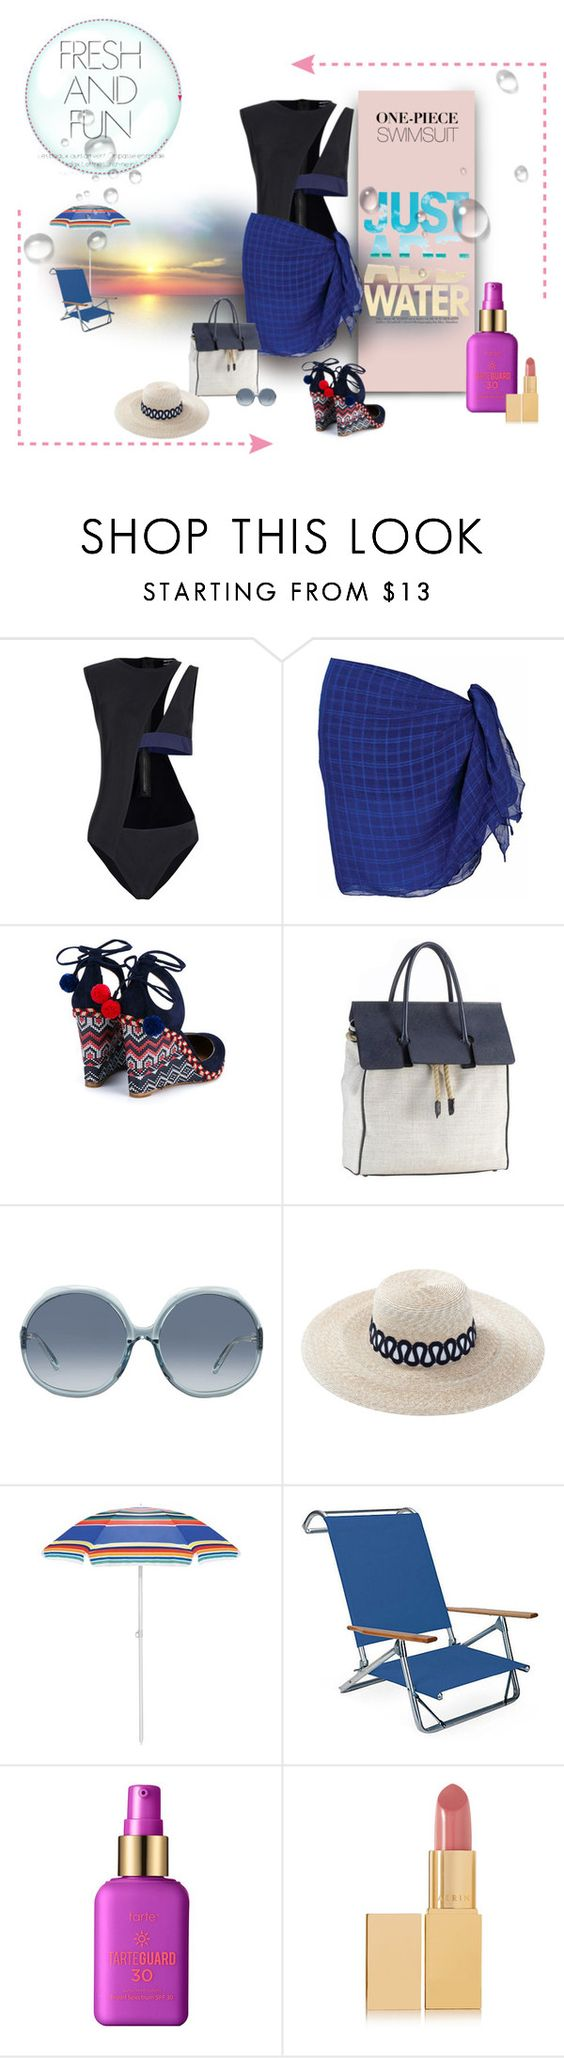 """""""Drops of Delight"""" by michelletheaflack ❤ liked on Polyvore featuring Anthony Vaccarello, Aquazzura, Mark/Giusti, Linda Farrow, Eugenia Kim, Picnic Time, tarte, AERIN, onepieceswimsuit and polyvorecontests"""